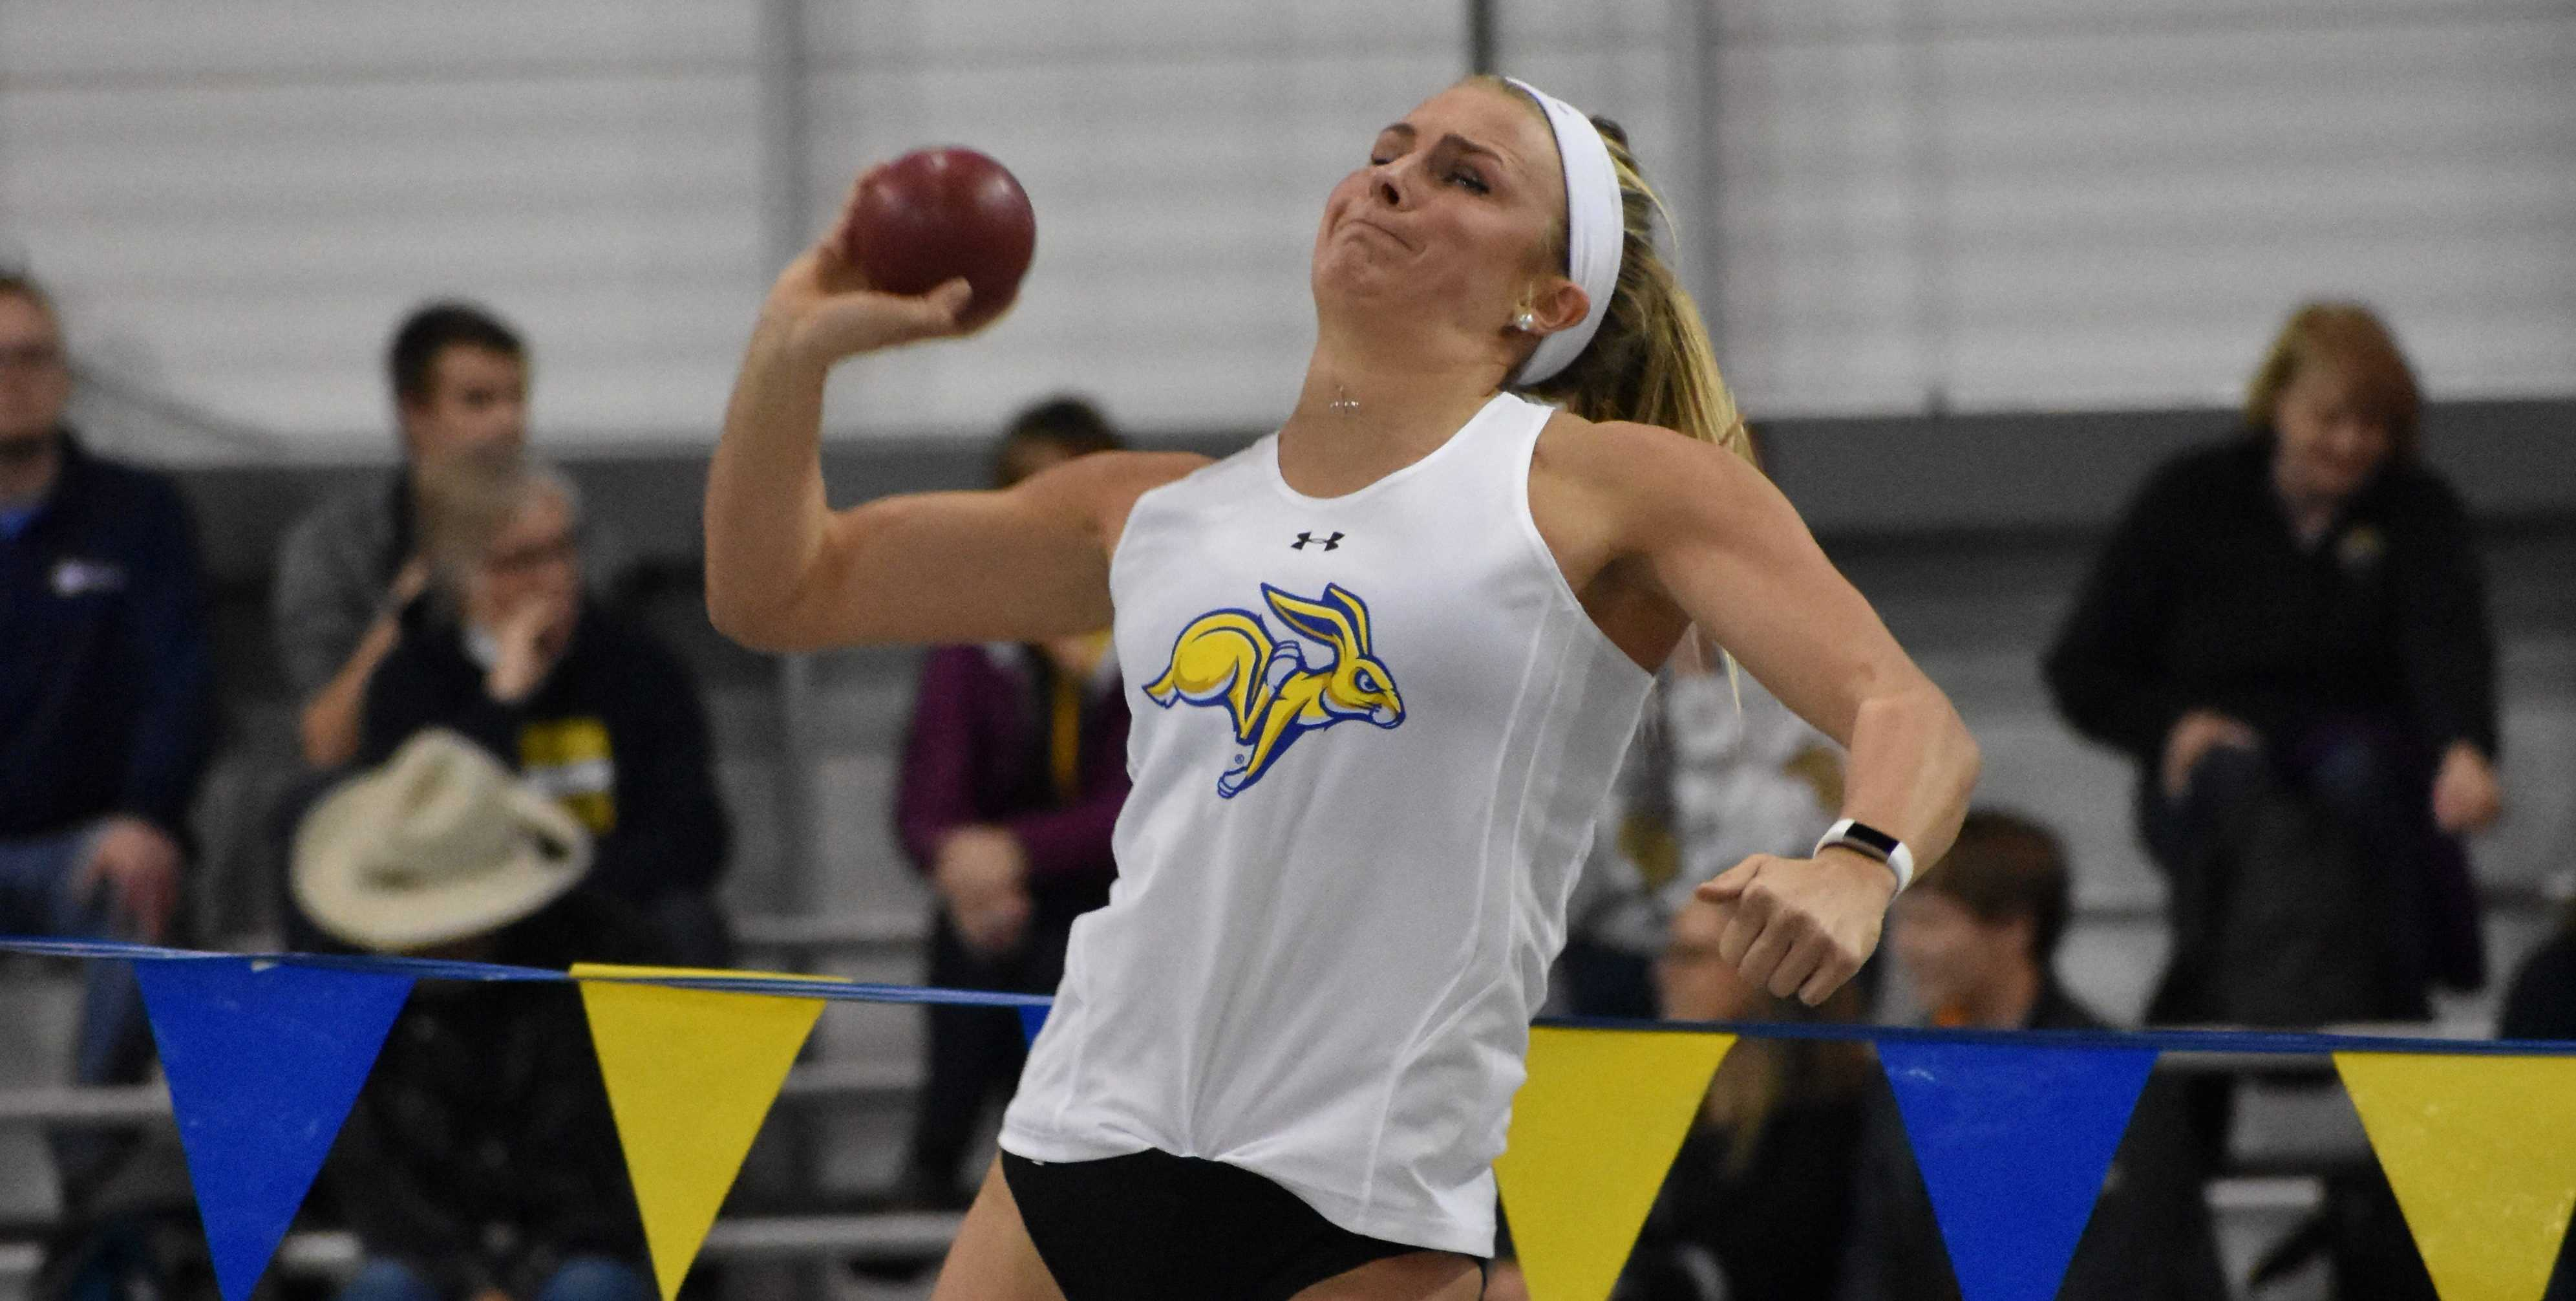 ABBY FULLENKAMP Senior Vanessa Lane competes in the women's shot put Jan. 19 during the SDSU DII Invitation meet . The Jacks host the SDSU Indoor Classic starting at 2 p.m. Feb. 9 and 9 a.m. Feb. 10 in the Sanford Jackrabbit Athletic Complex.